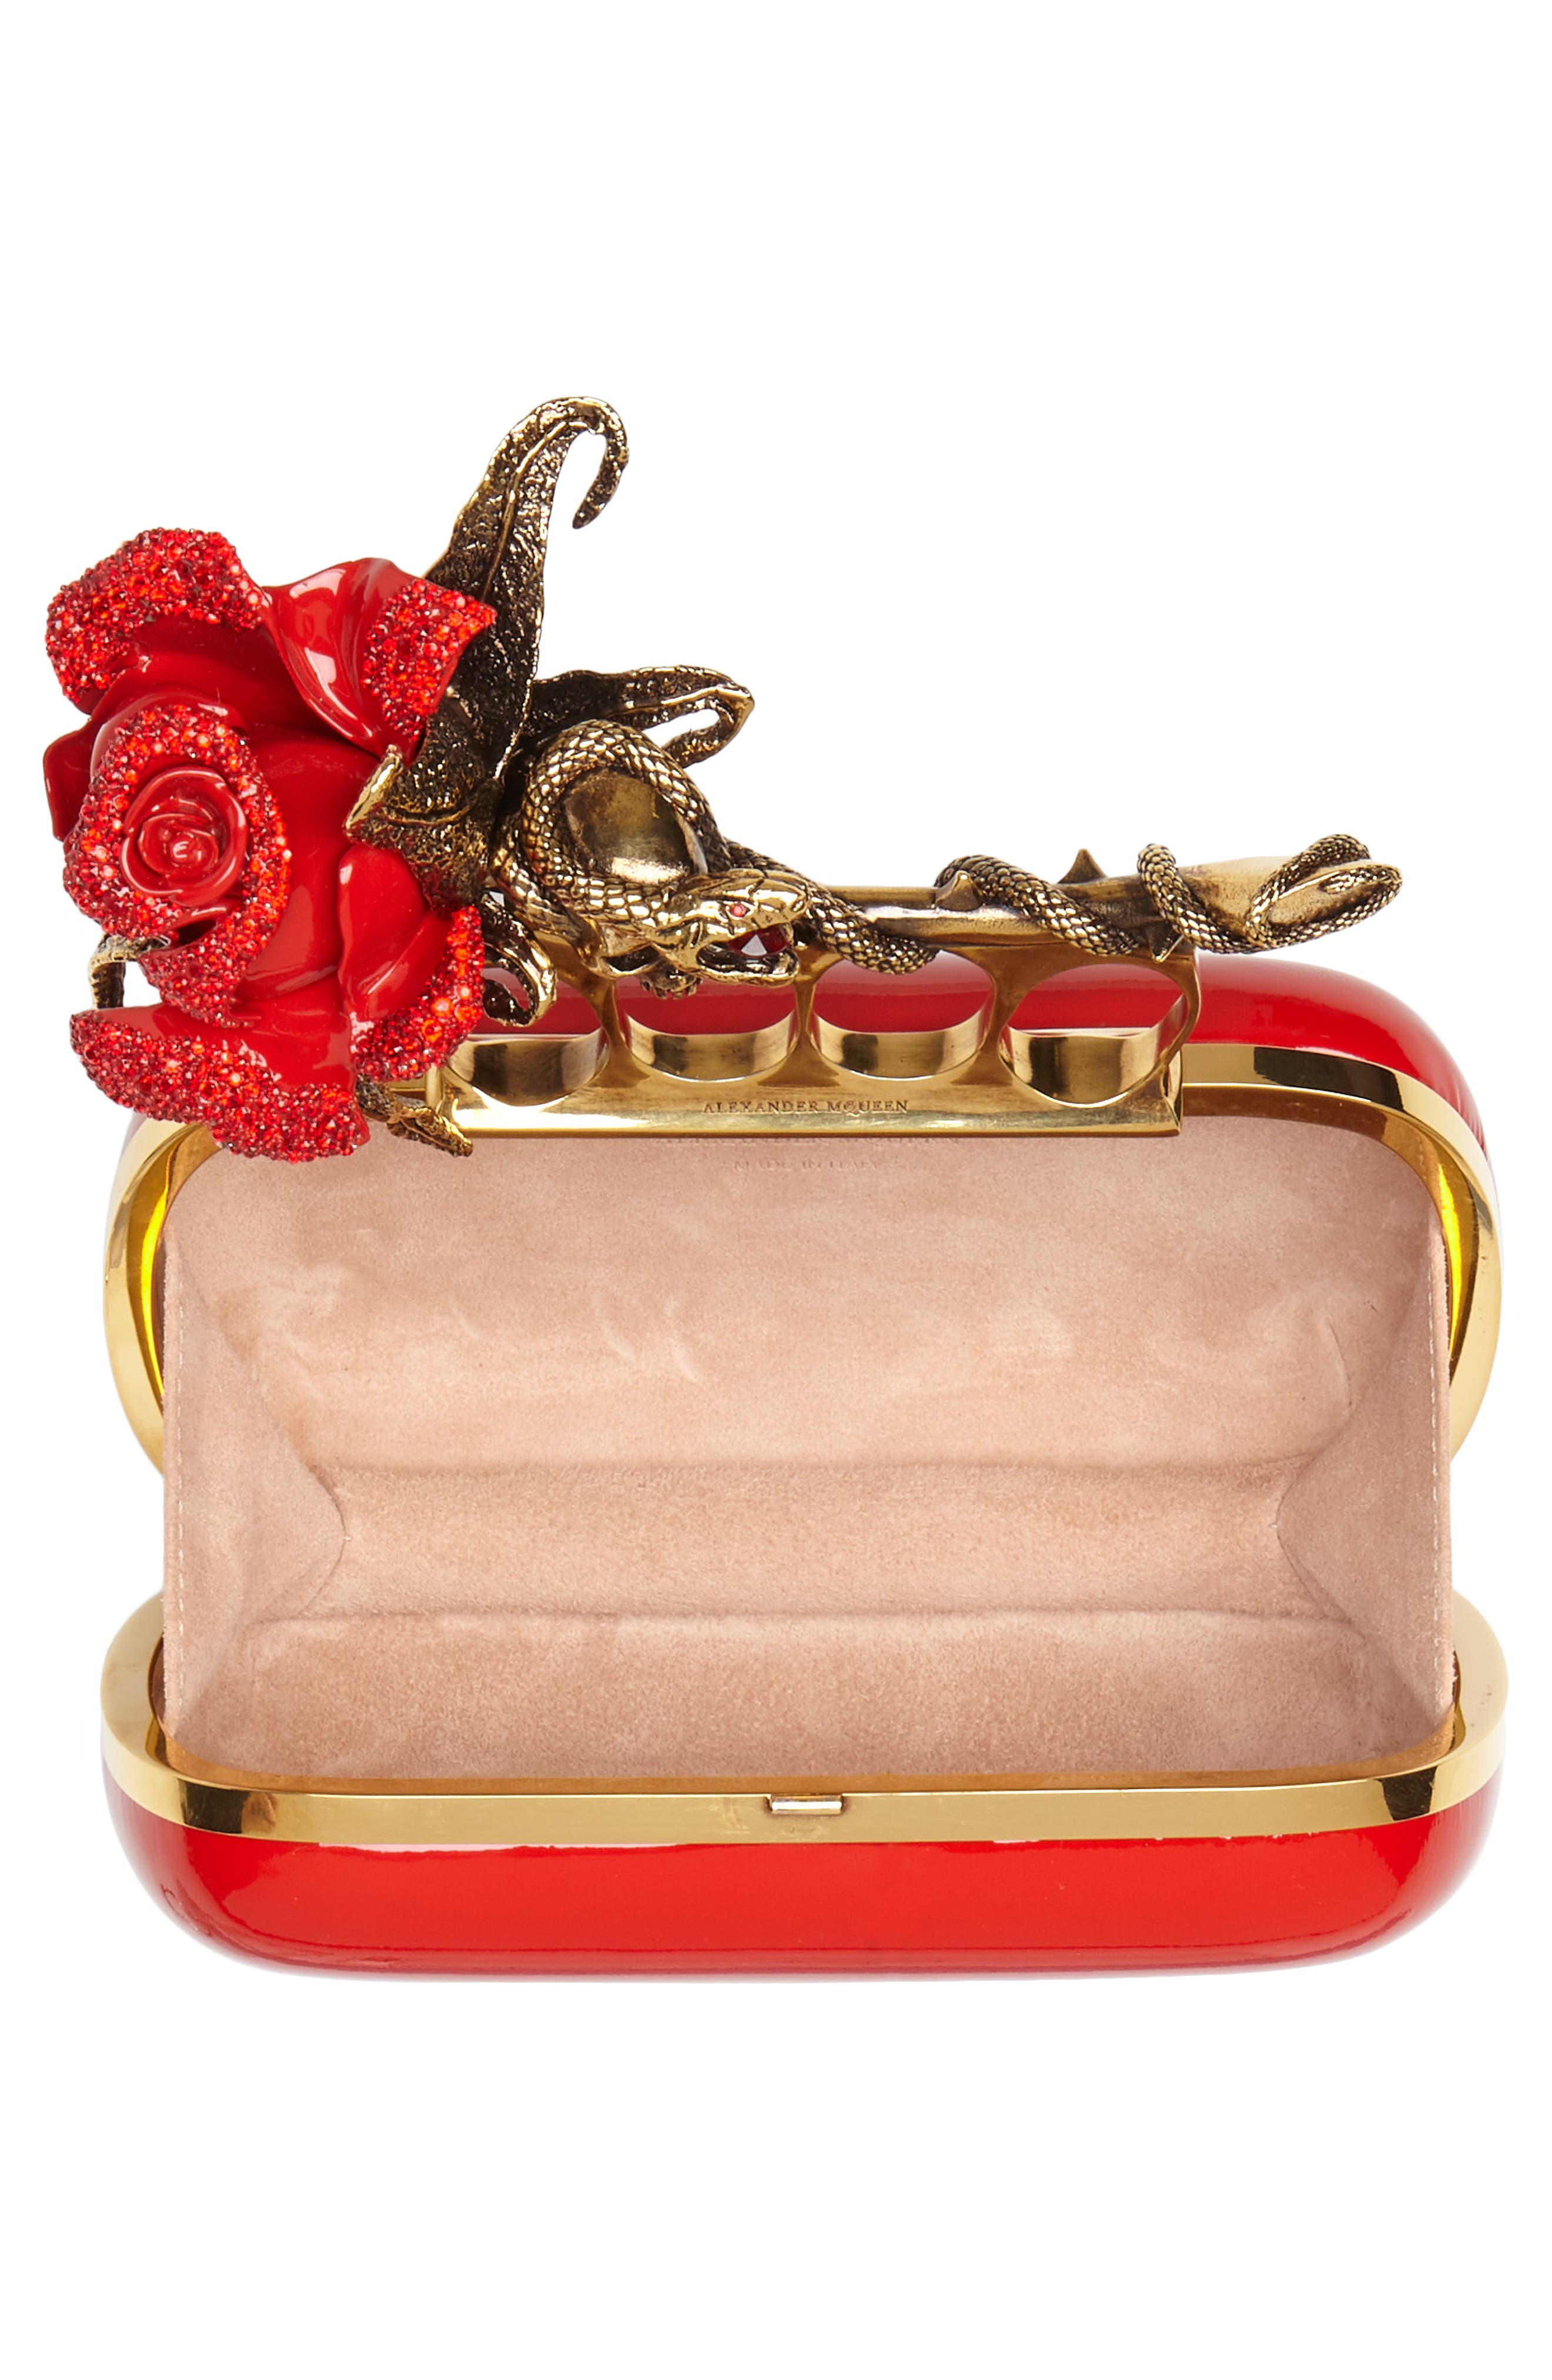 Knuckle Clasp Patent Leather Box Clutch,                             Alternate thumbnail 4, color,                             624